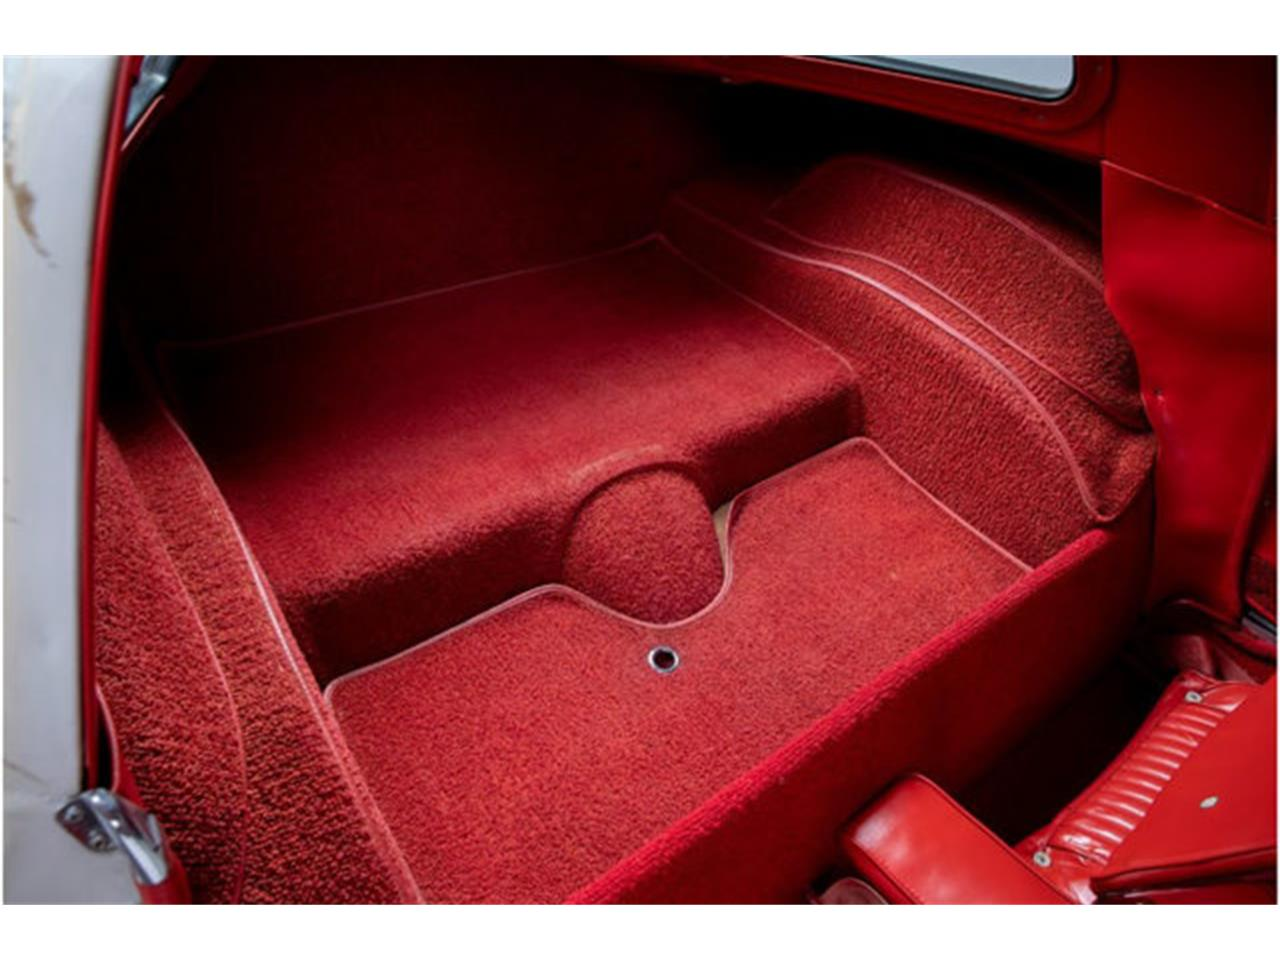 Large Picture of Classic 1963 Corvette located in New York - $139,999.00 Offered by Prestige Motor Car Co. - QOXV